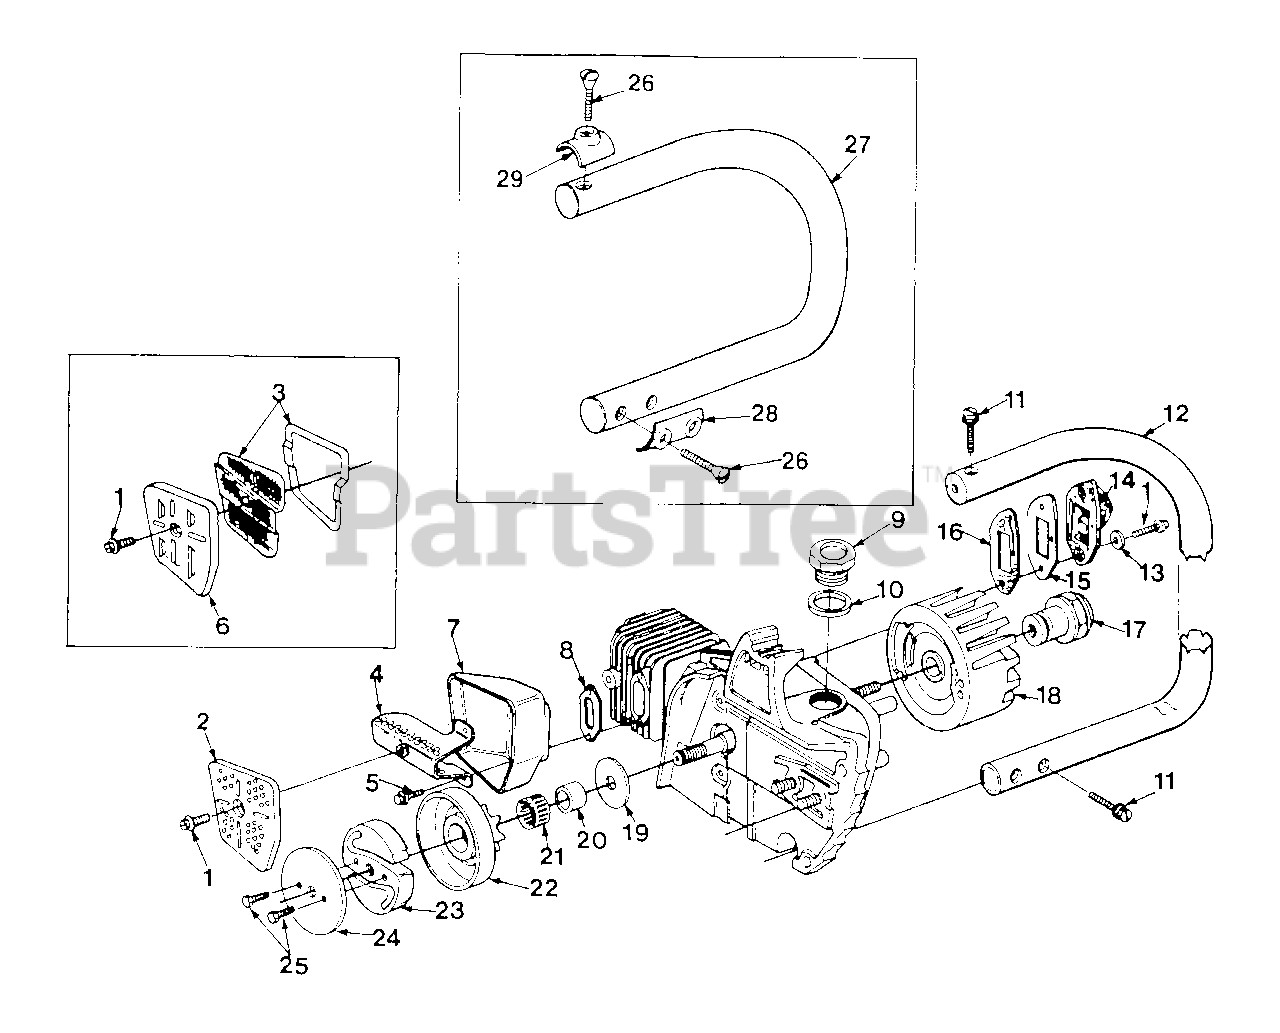 Homelite Chainsaw Parts Diagram : Chainsaw Spare Parts